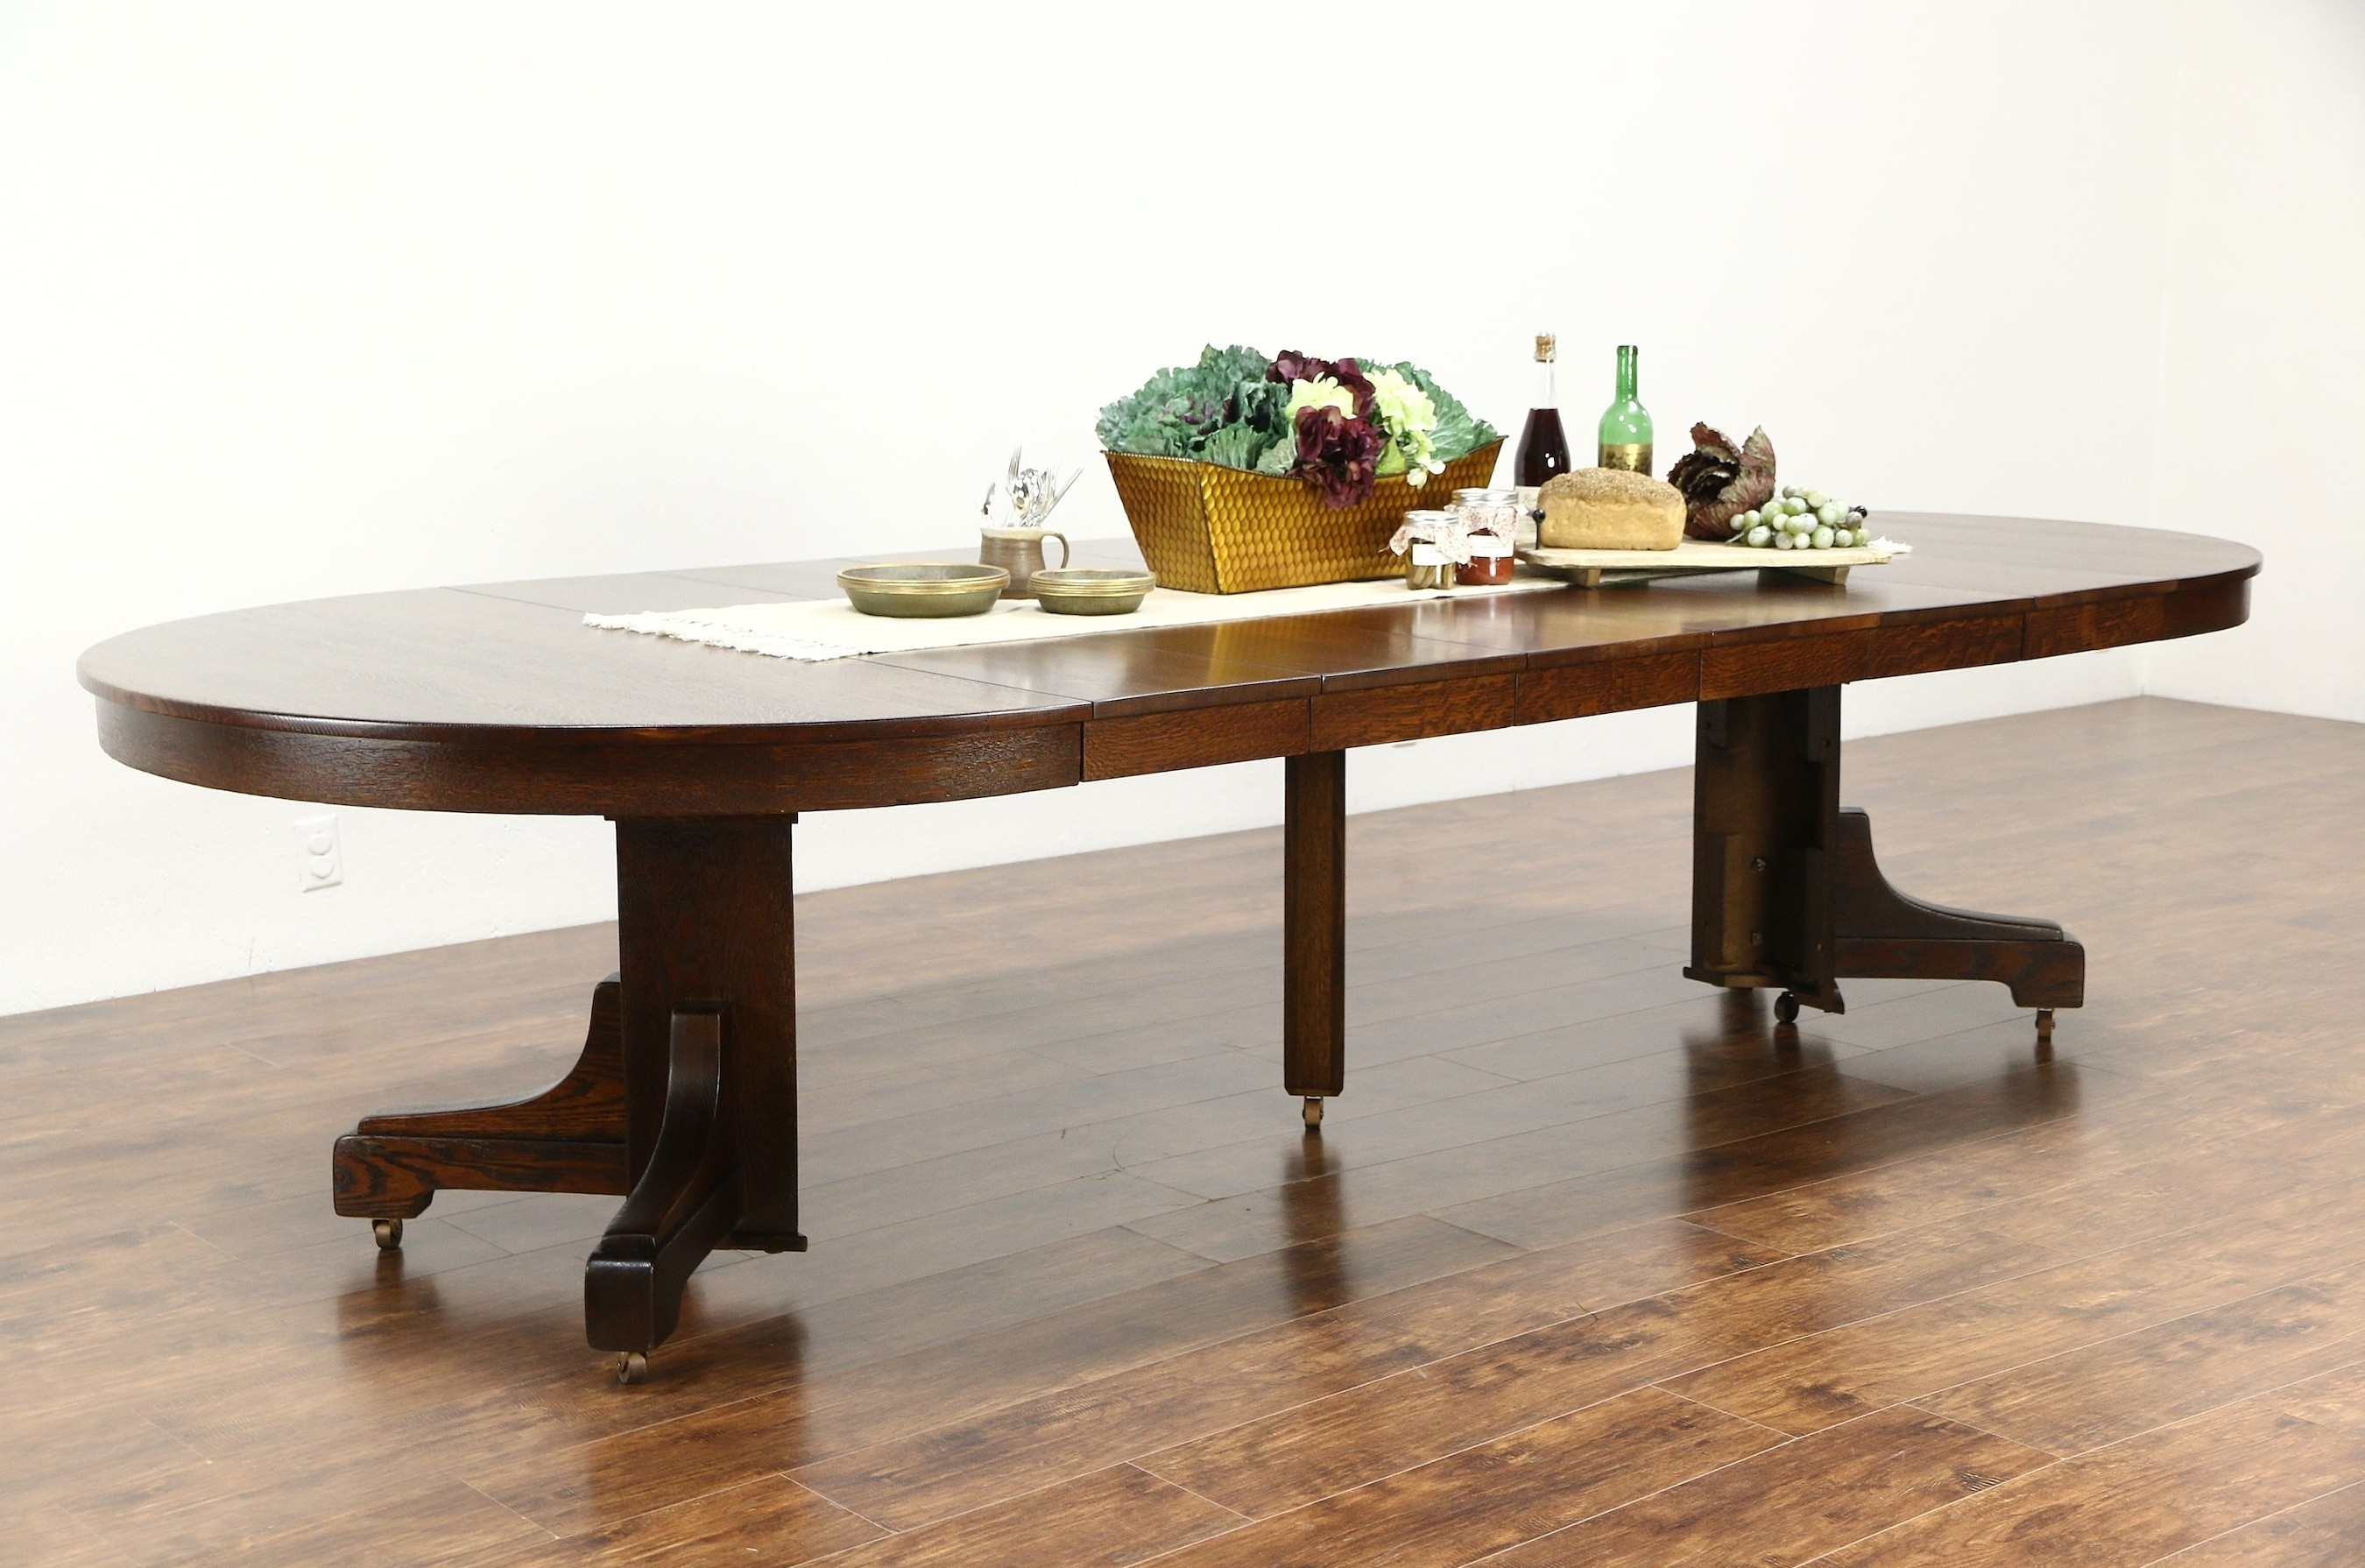 Sold – Arts & Crafts Mission Oak Antique Craftsman Dining Table 6 Intended For Newest Craftsman Round Dining Tables (Image 15 of 20)